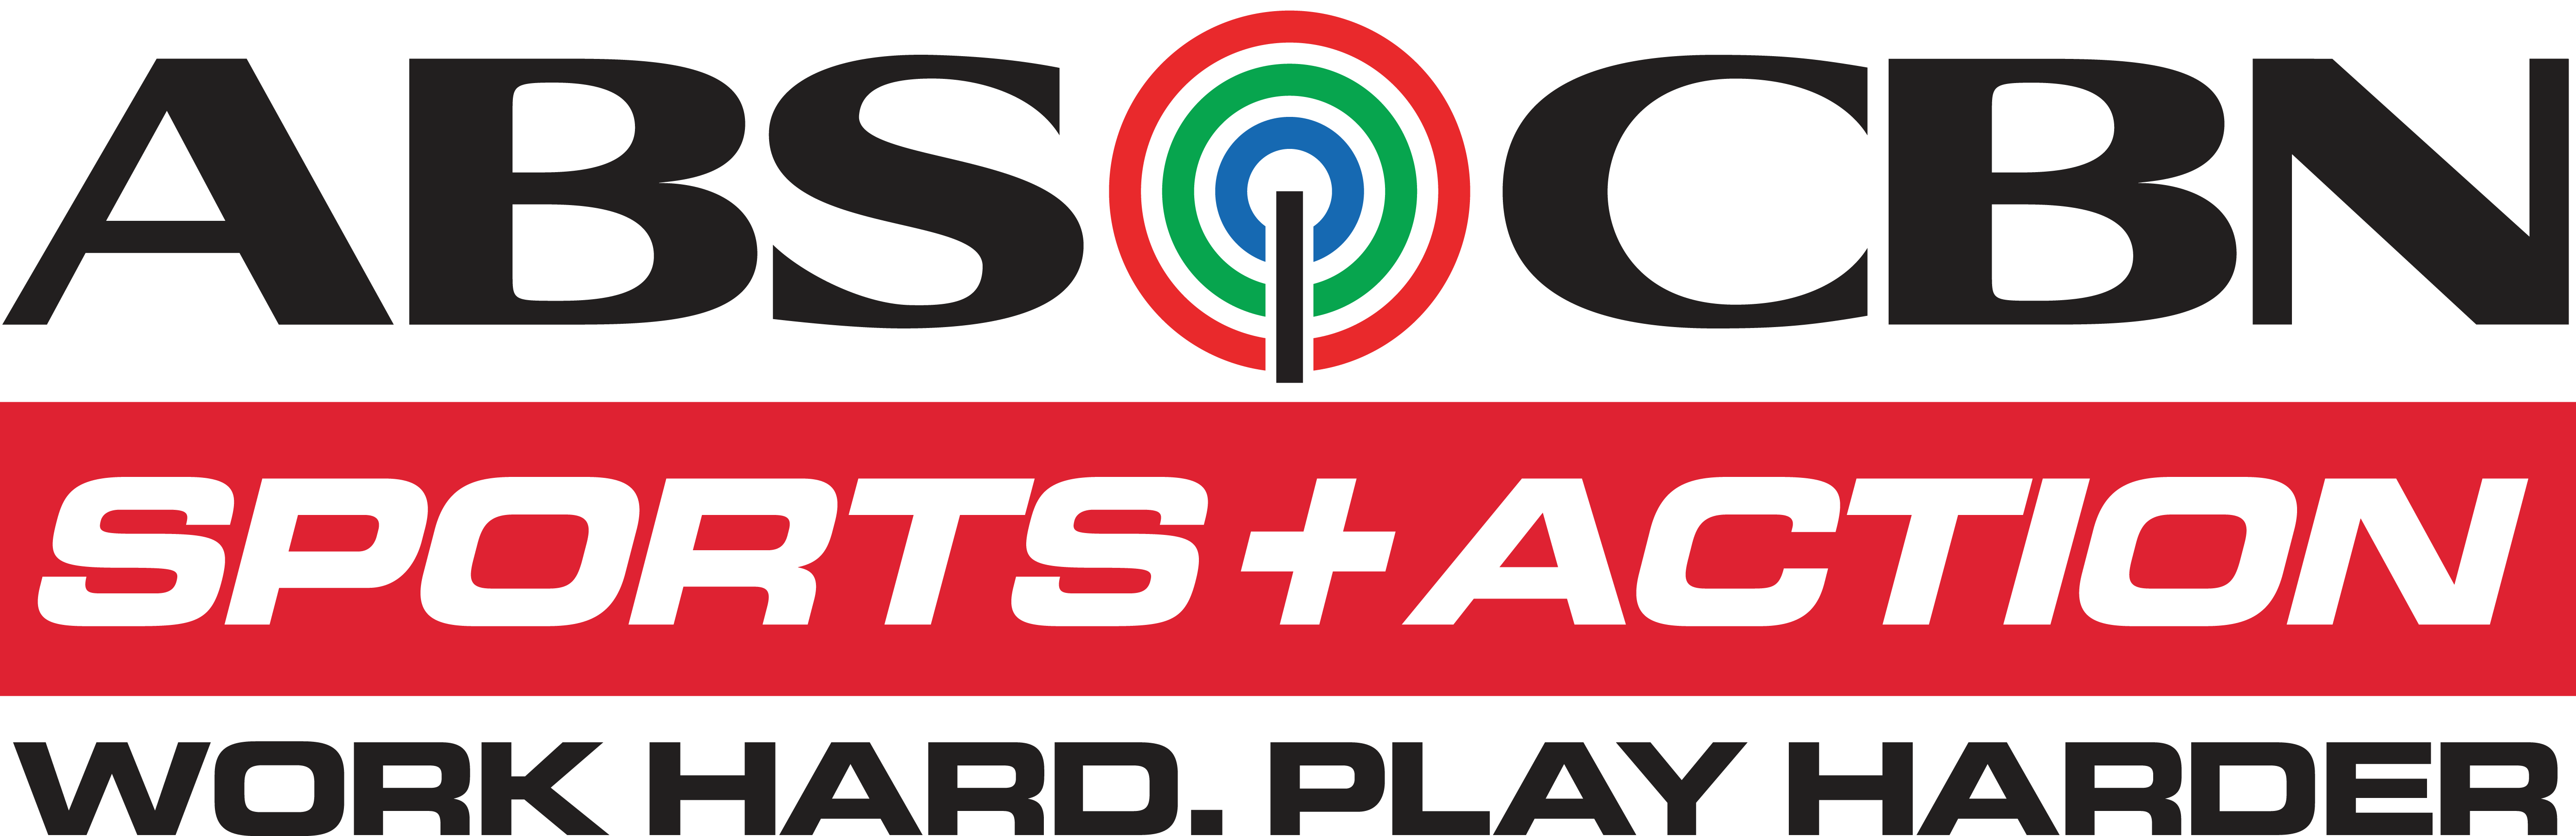 ABS-CBN Sports and Action Global